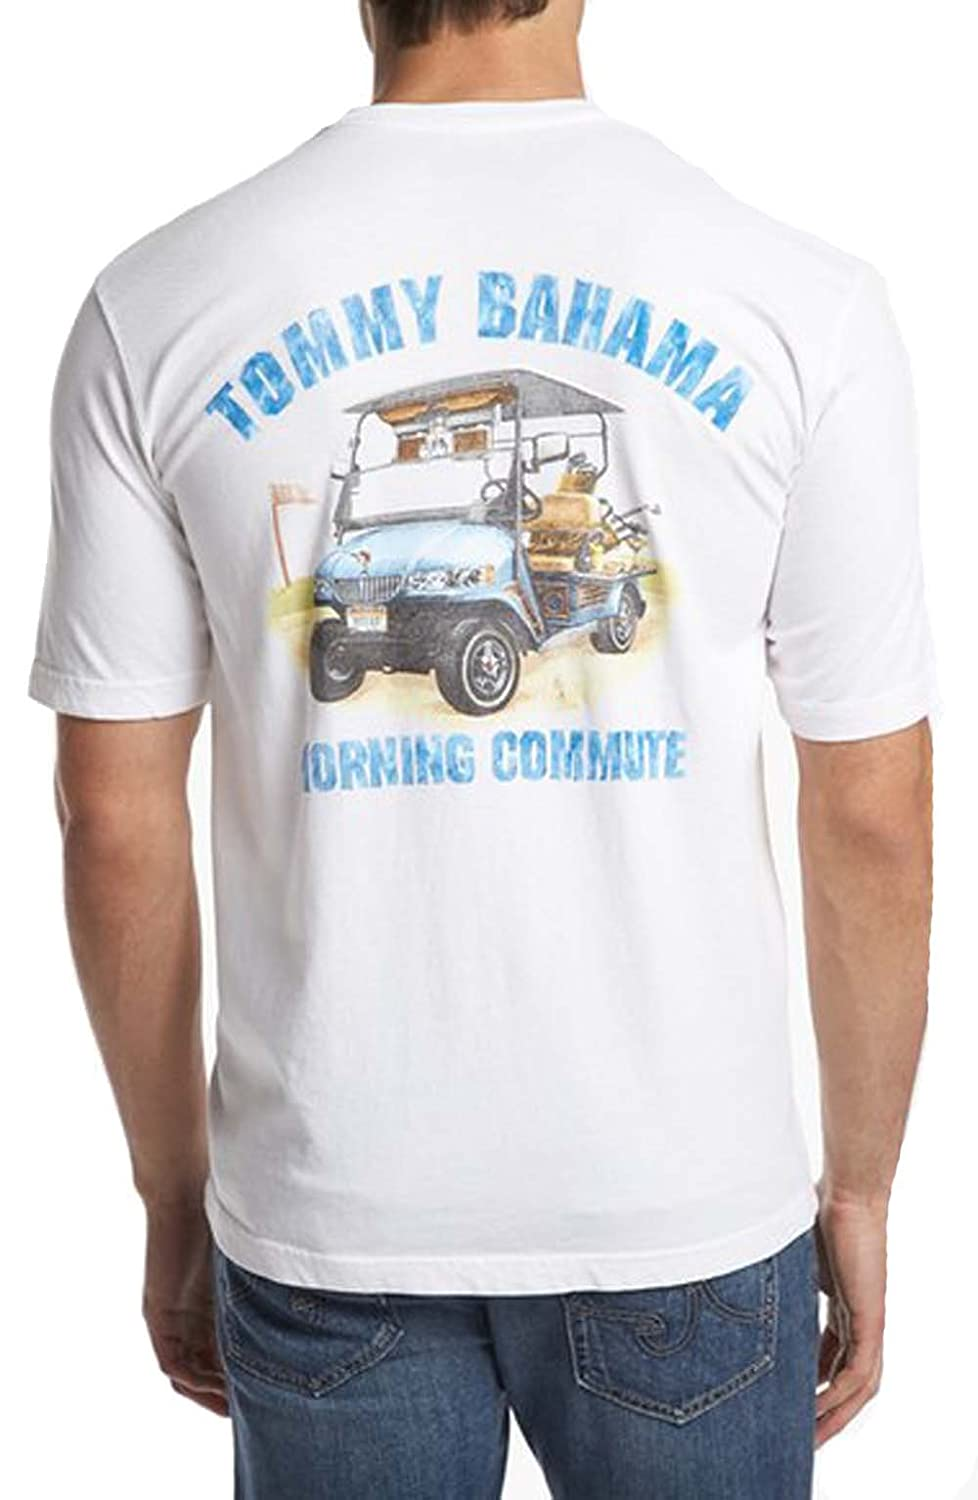 Tommy Bahama Morning Commute Large White T-Shirt